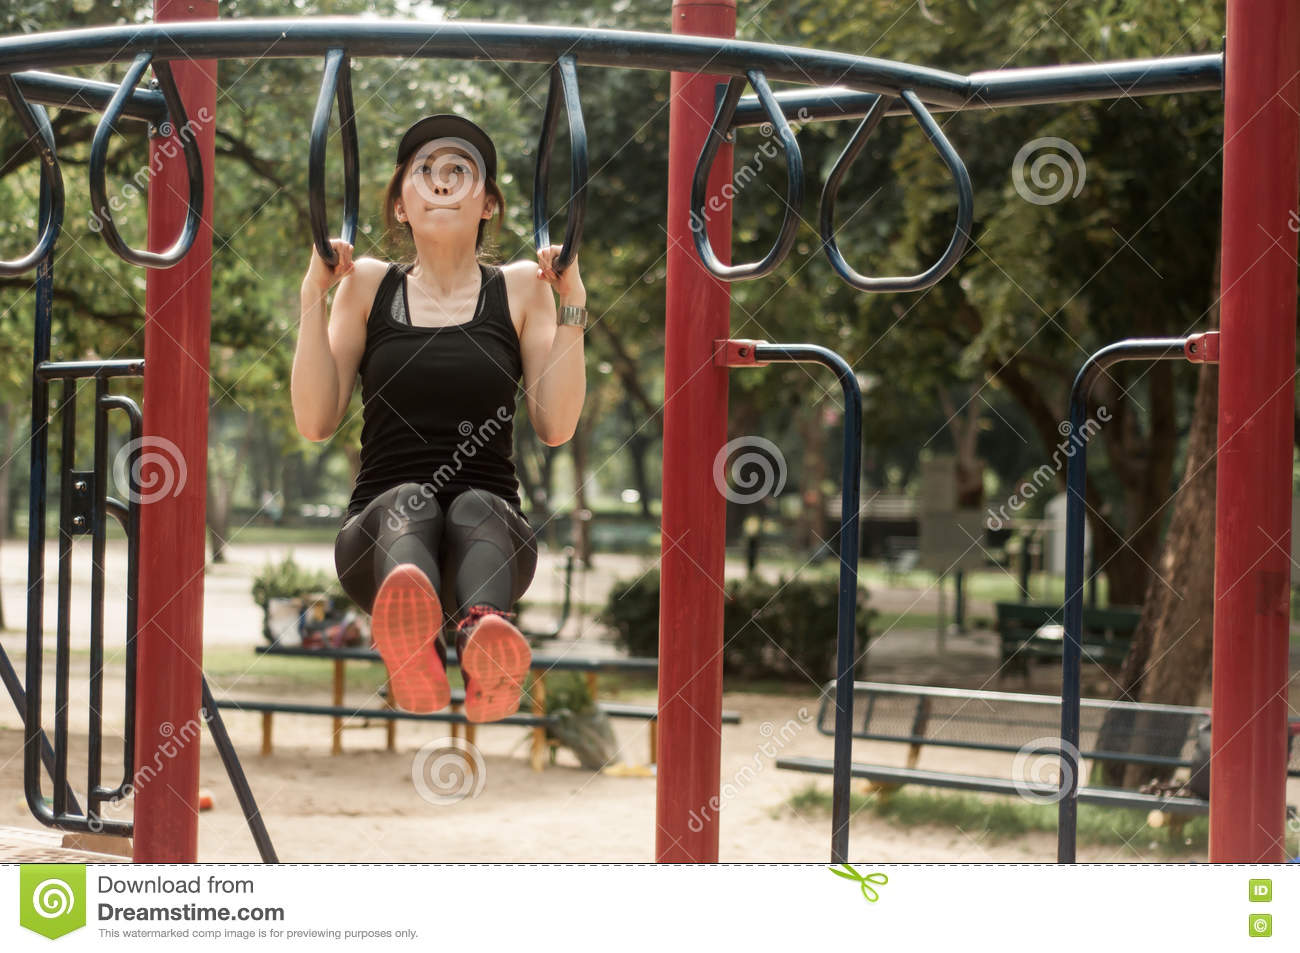 Young fit woman doing a pull up workout at a playground